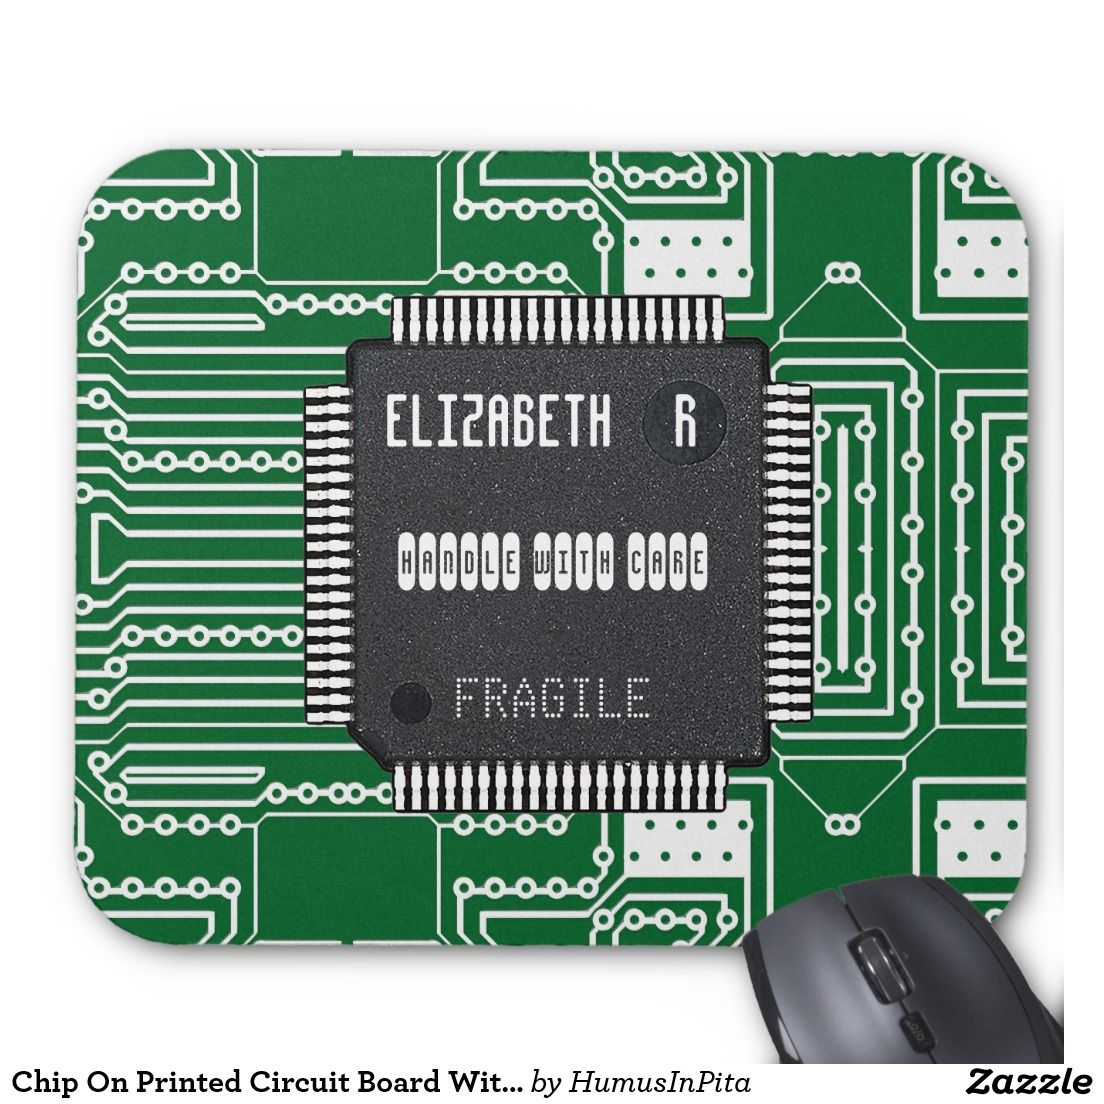 Circuit Board Chips Best Secret Wiring Diagram Pics Photos Desktop Wallpapers Printed Pictures Chip On With Your Name Mouse Pad Wear Rh Pinterest Ca Cricut Chipboard Wallpaper Poker